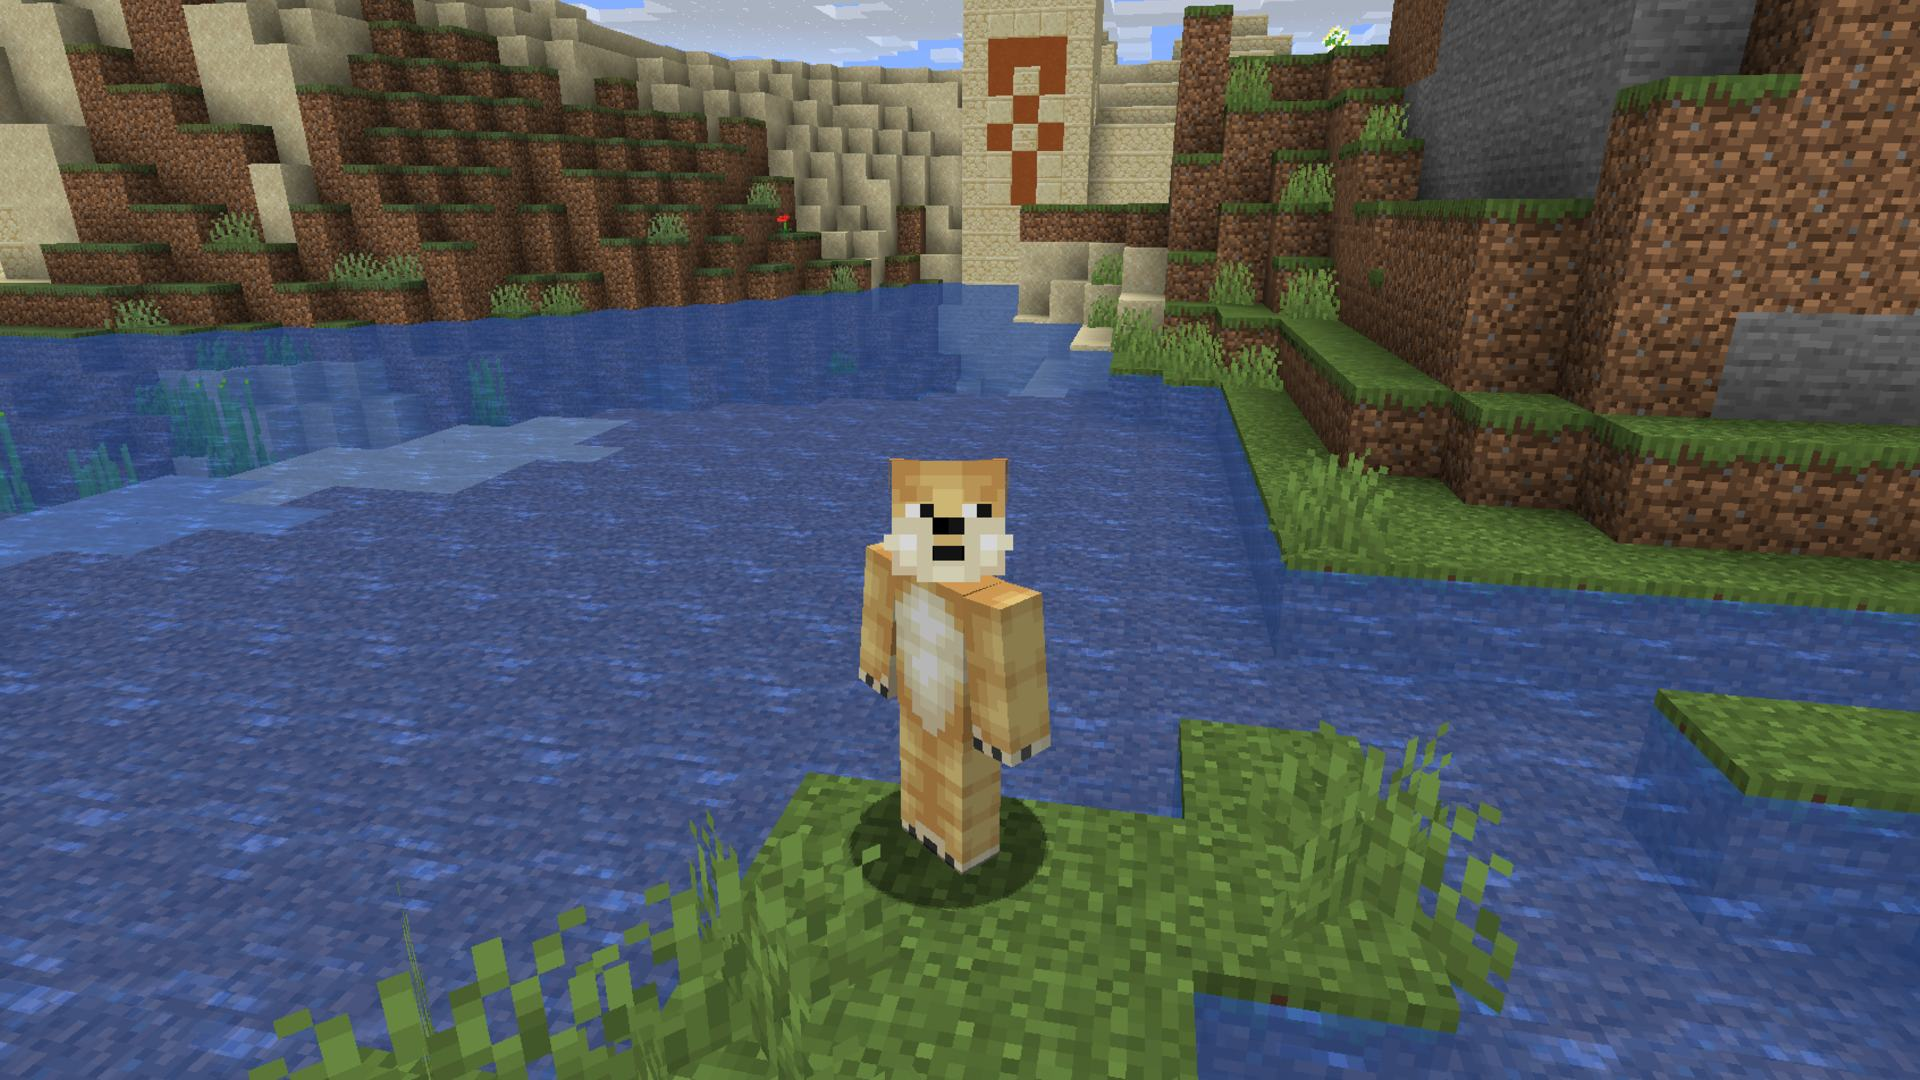 Cool Minecraft Skins Pcgamesn Unfortunately we can only use the nick on skins, your nickname, we can't tie without a license of the game. cool minecraft skins pcgamesn